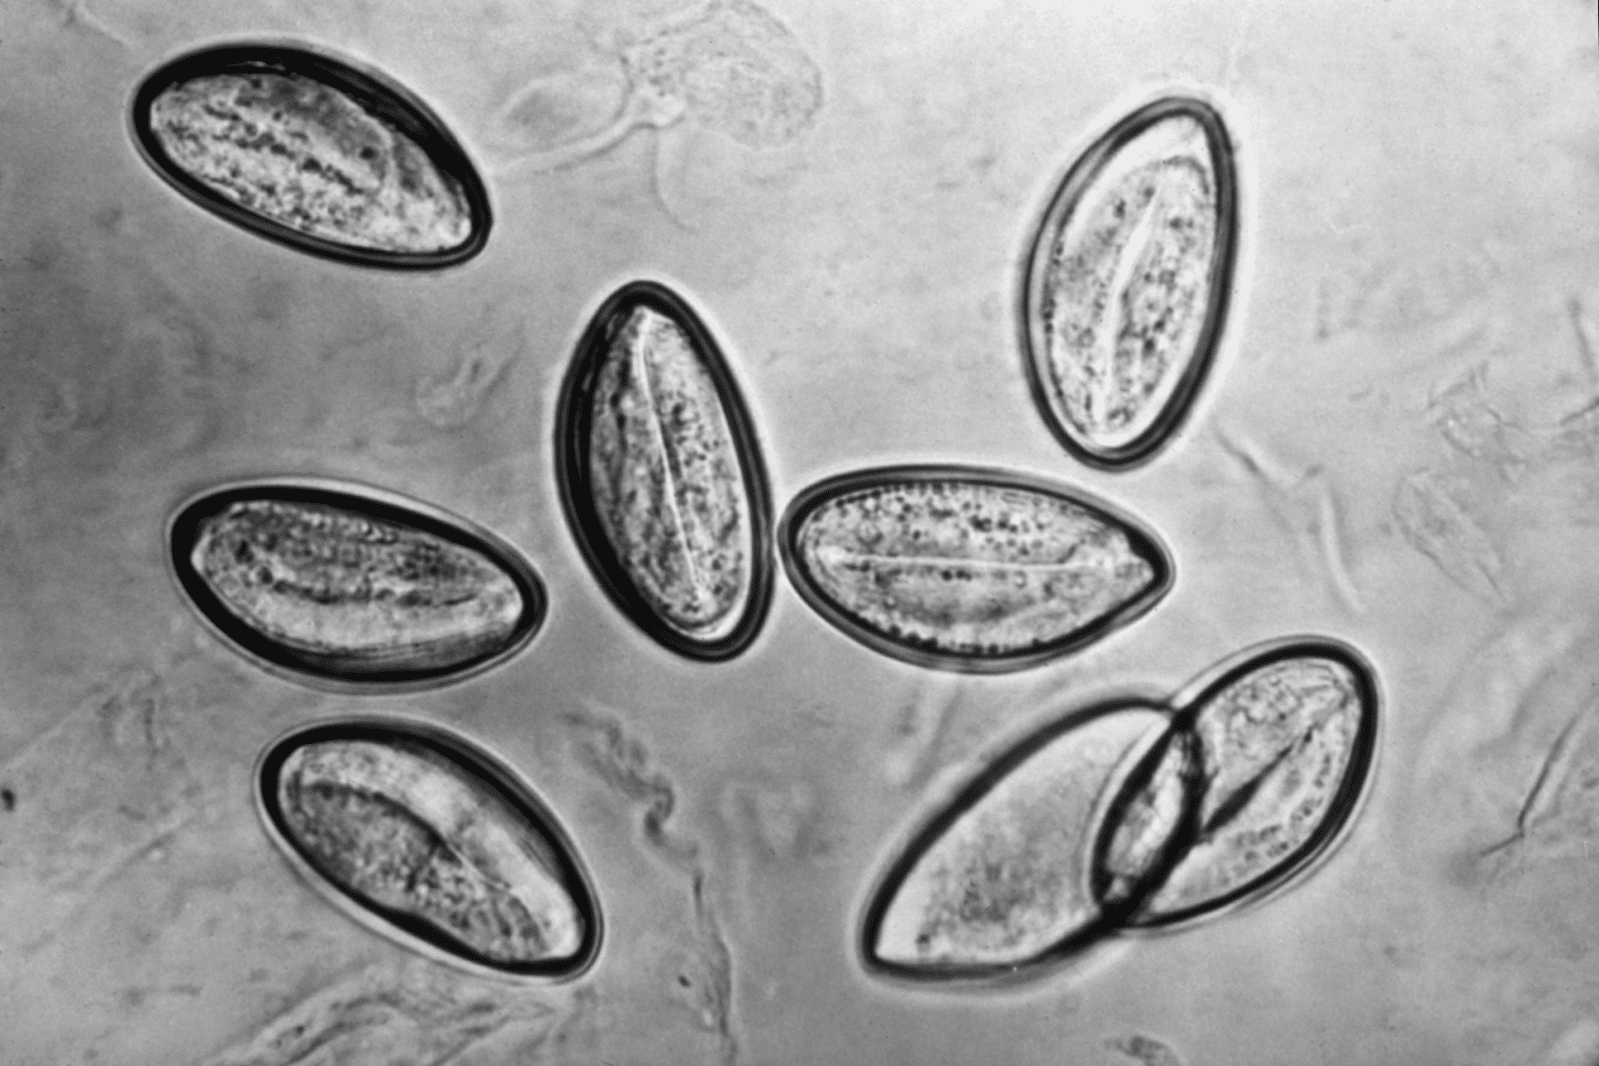 This photomicrograph depicts the eggs of the human parasite Enterobius vermicularis via cellulose tape under significant magnification.